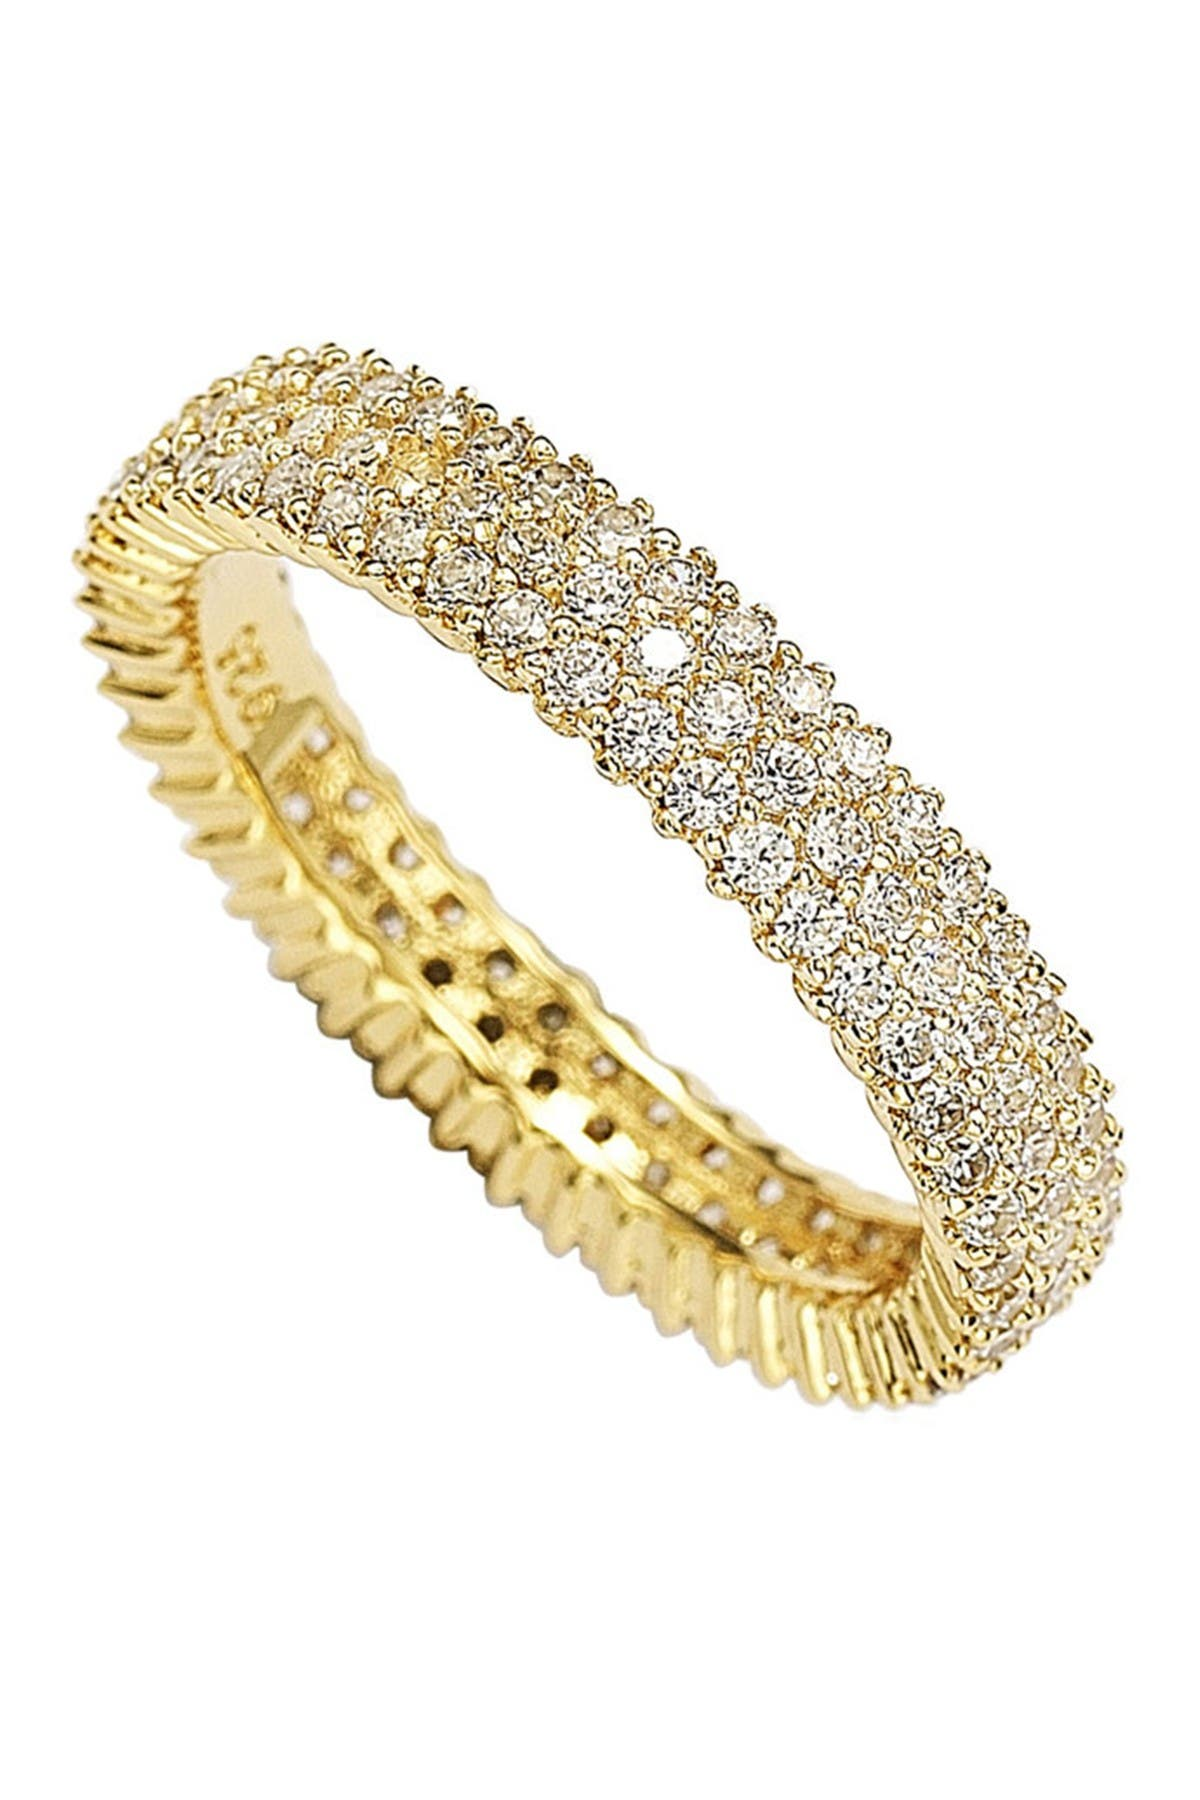 Image of Suzy Levian 14K Yellow Gold Plated Micro-Pave White CZ Eternity Band Ring